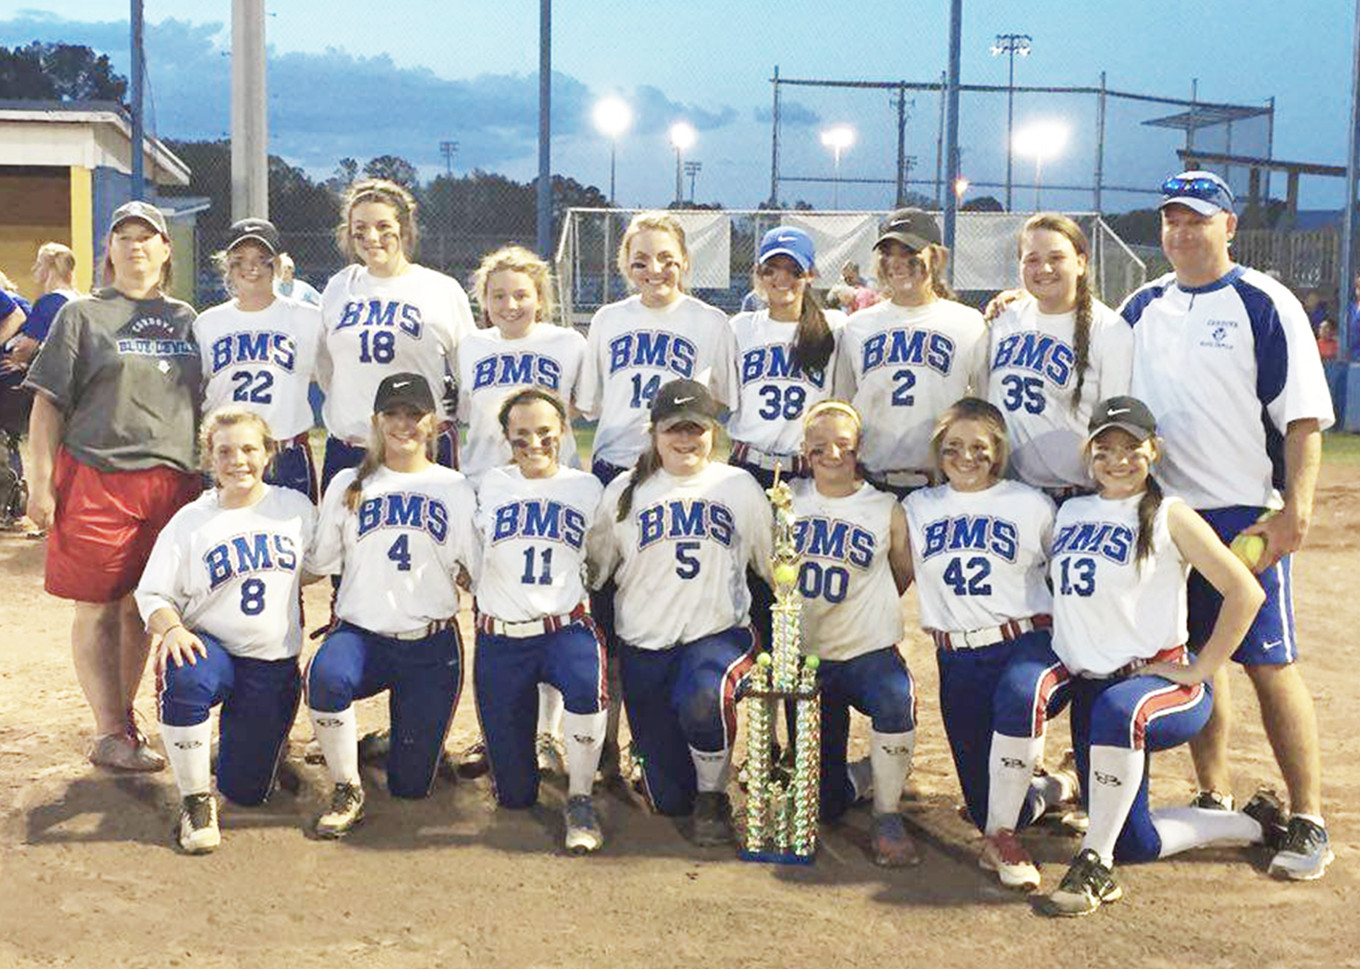 The Bankhead Middle School softball team won its third-consecutive Walker County Championship, finishing the season with a remarkable 36-1 record.  –  Special to the Eagle